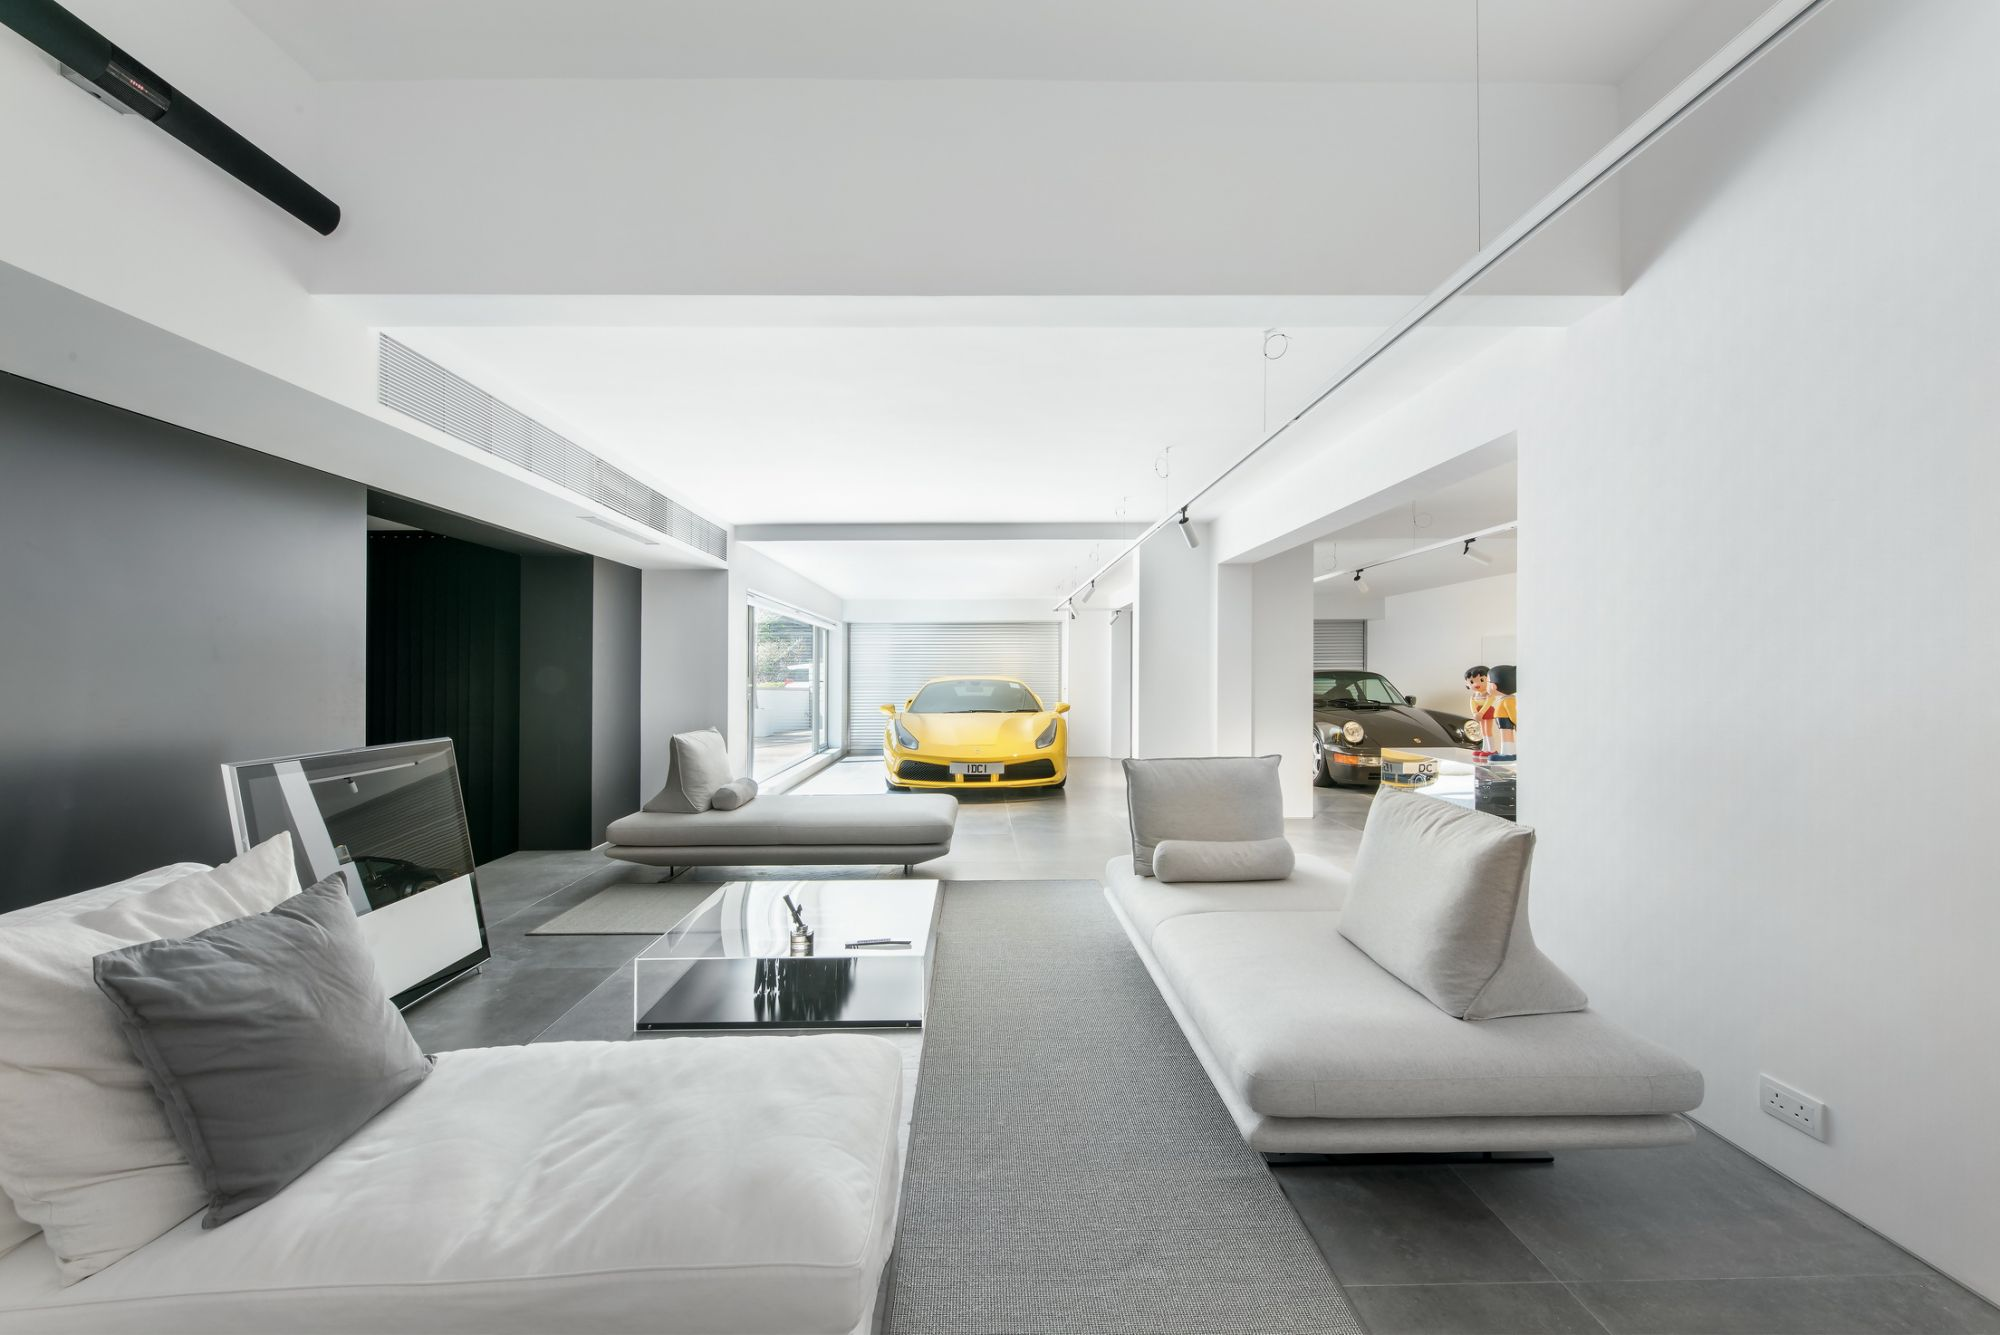 Danny Cheng's Yuen Long Home Is The Ultimate Car Lover's Hideaway